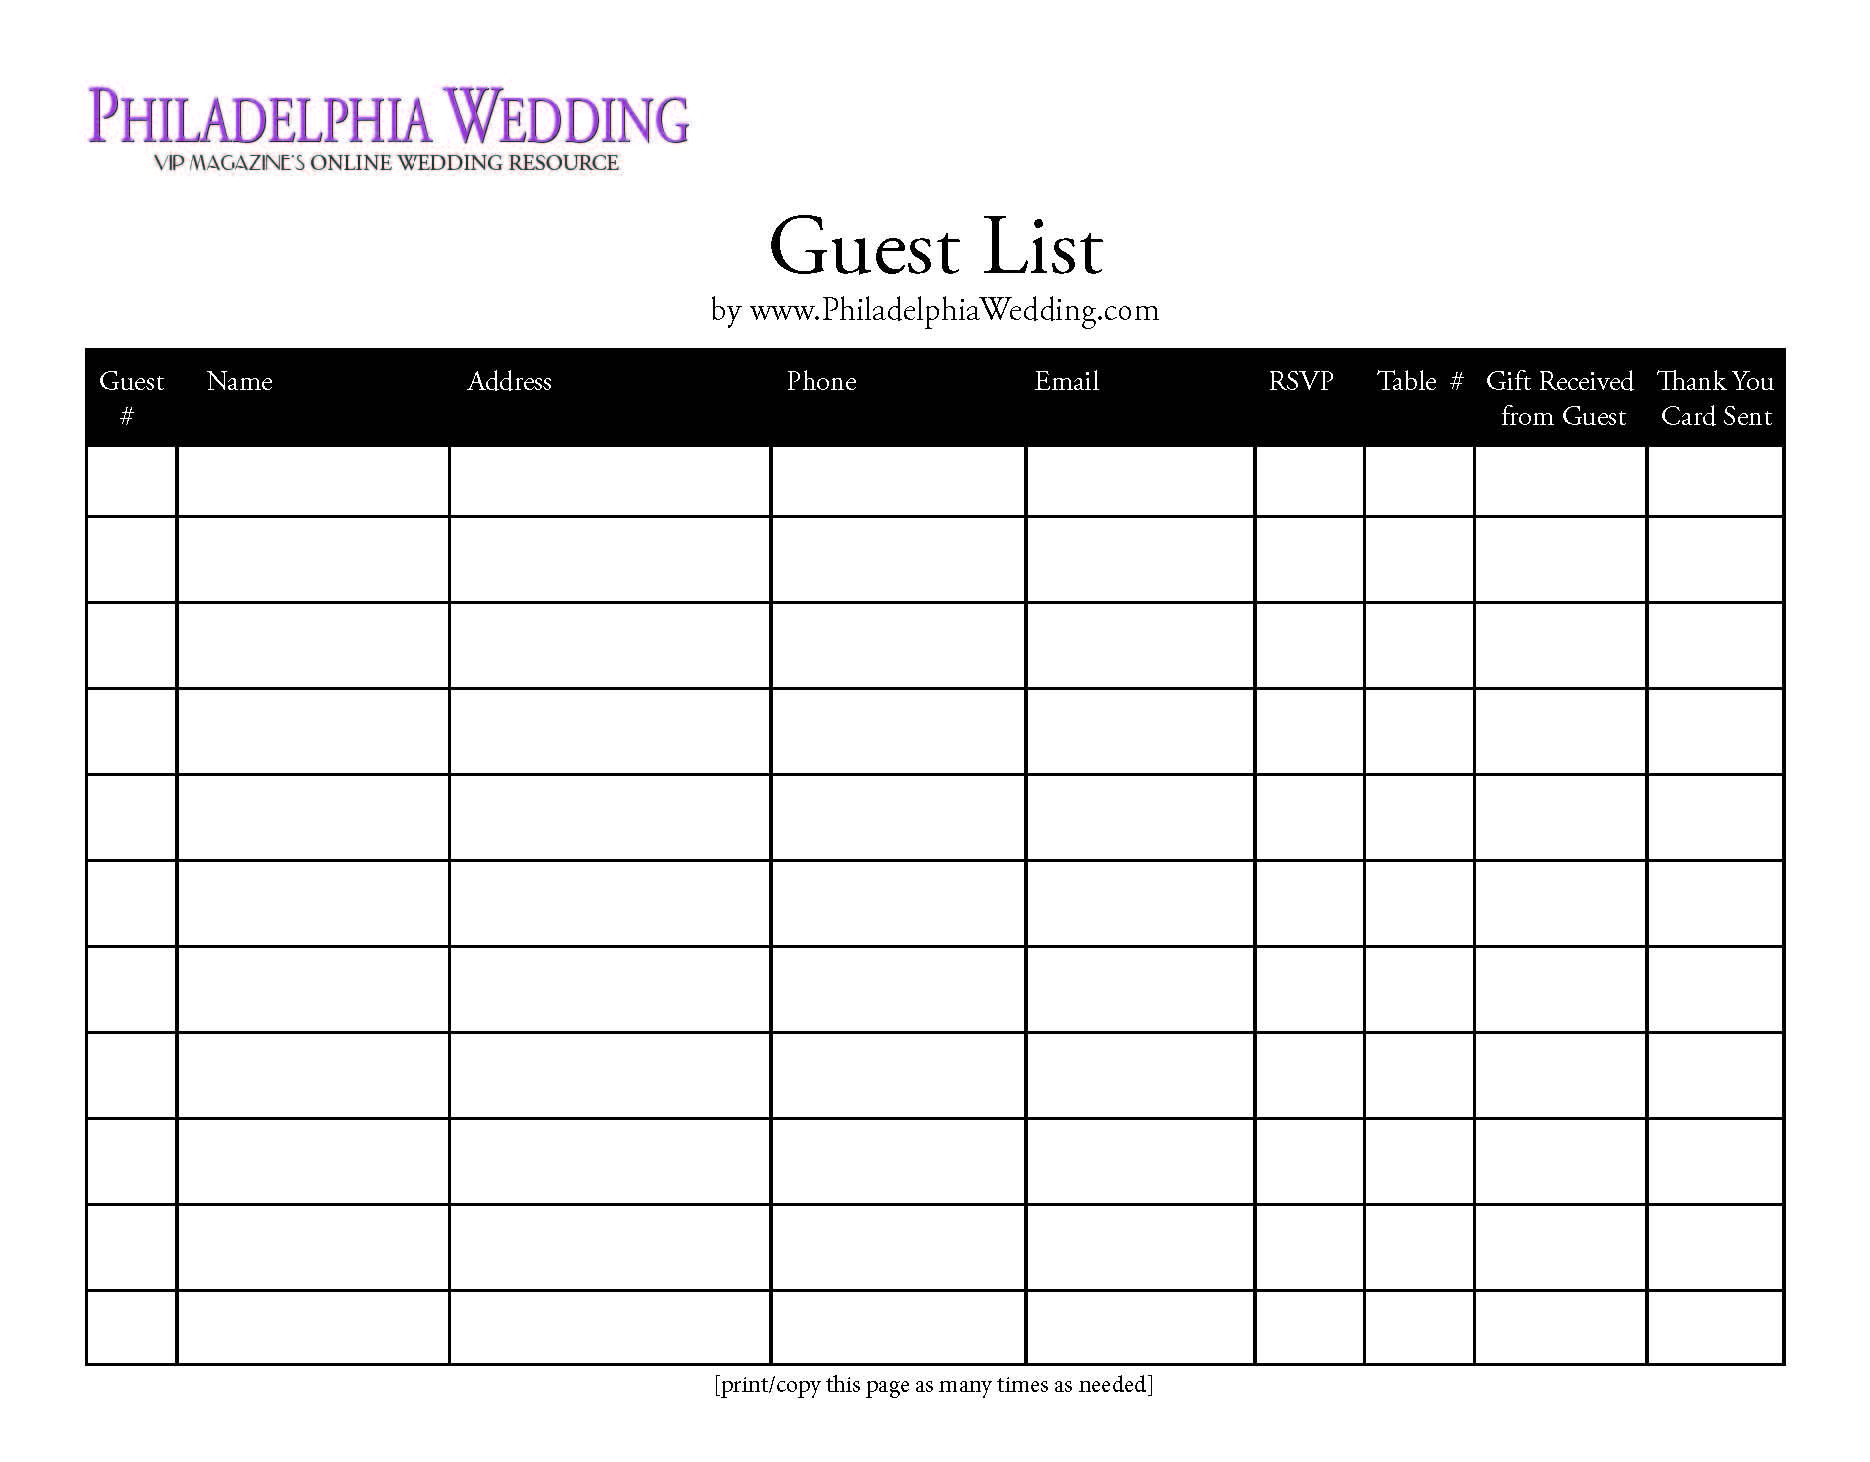 Wedding Guest List Template Printable on wedding event planning – Printable Guest List Template